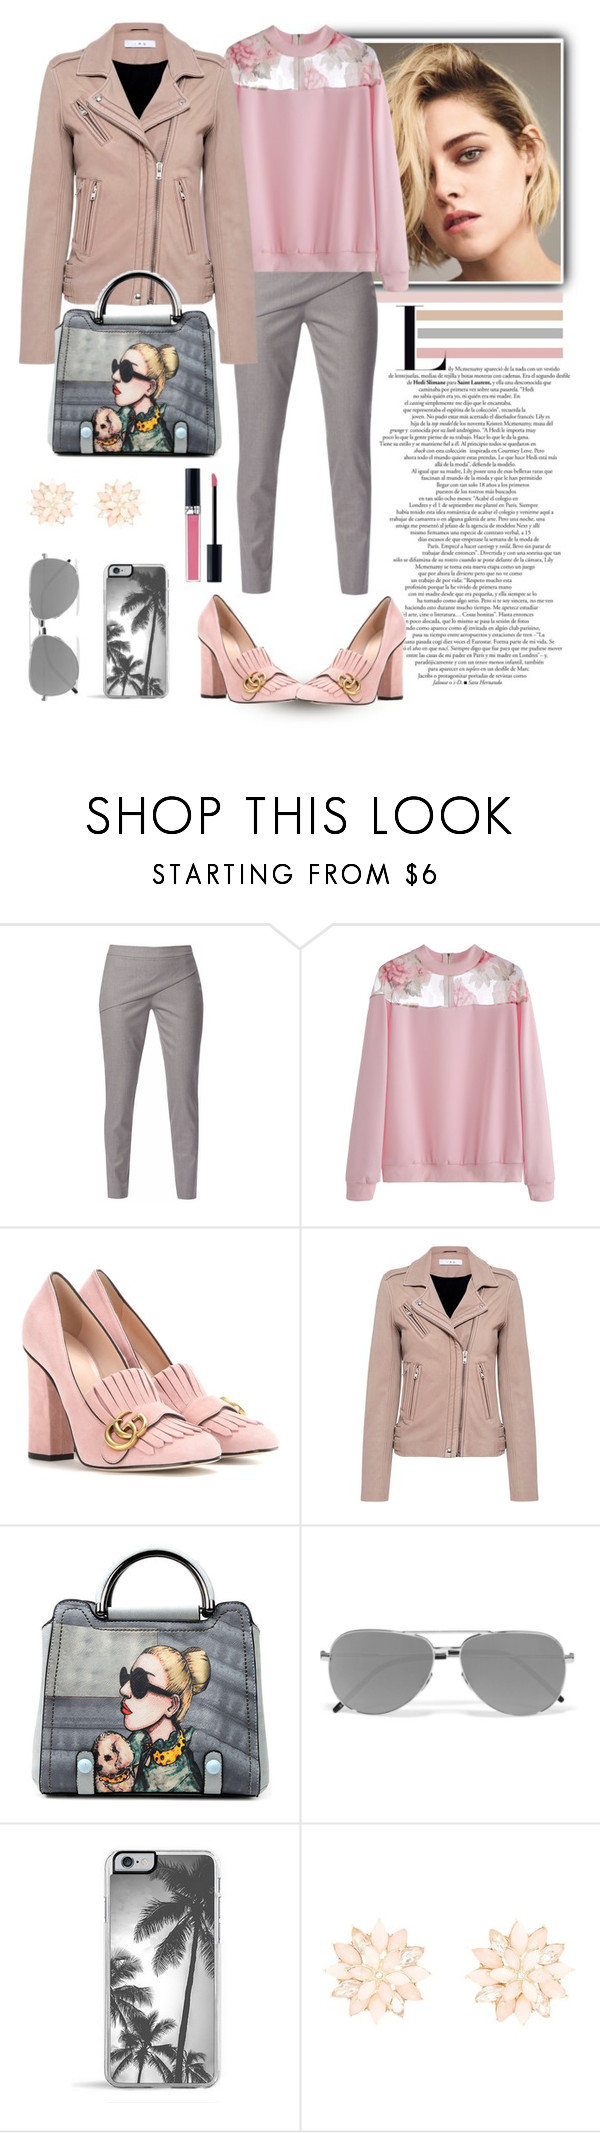 """Без названия #484"" by nastiabigatty ❤ liked on Polyvore featuring WtR London, Gucci, IRO, Yves Saint Laurent, Zero Gravity, Charlotte Russe and Christian Dior"